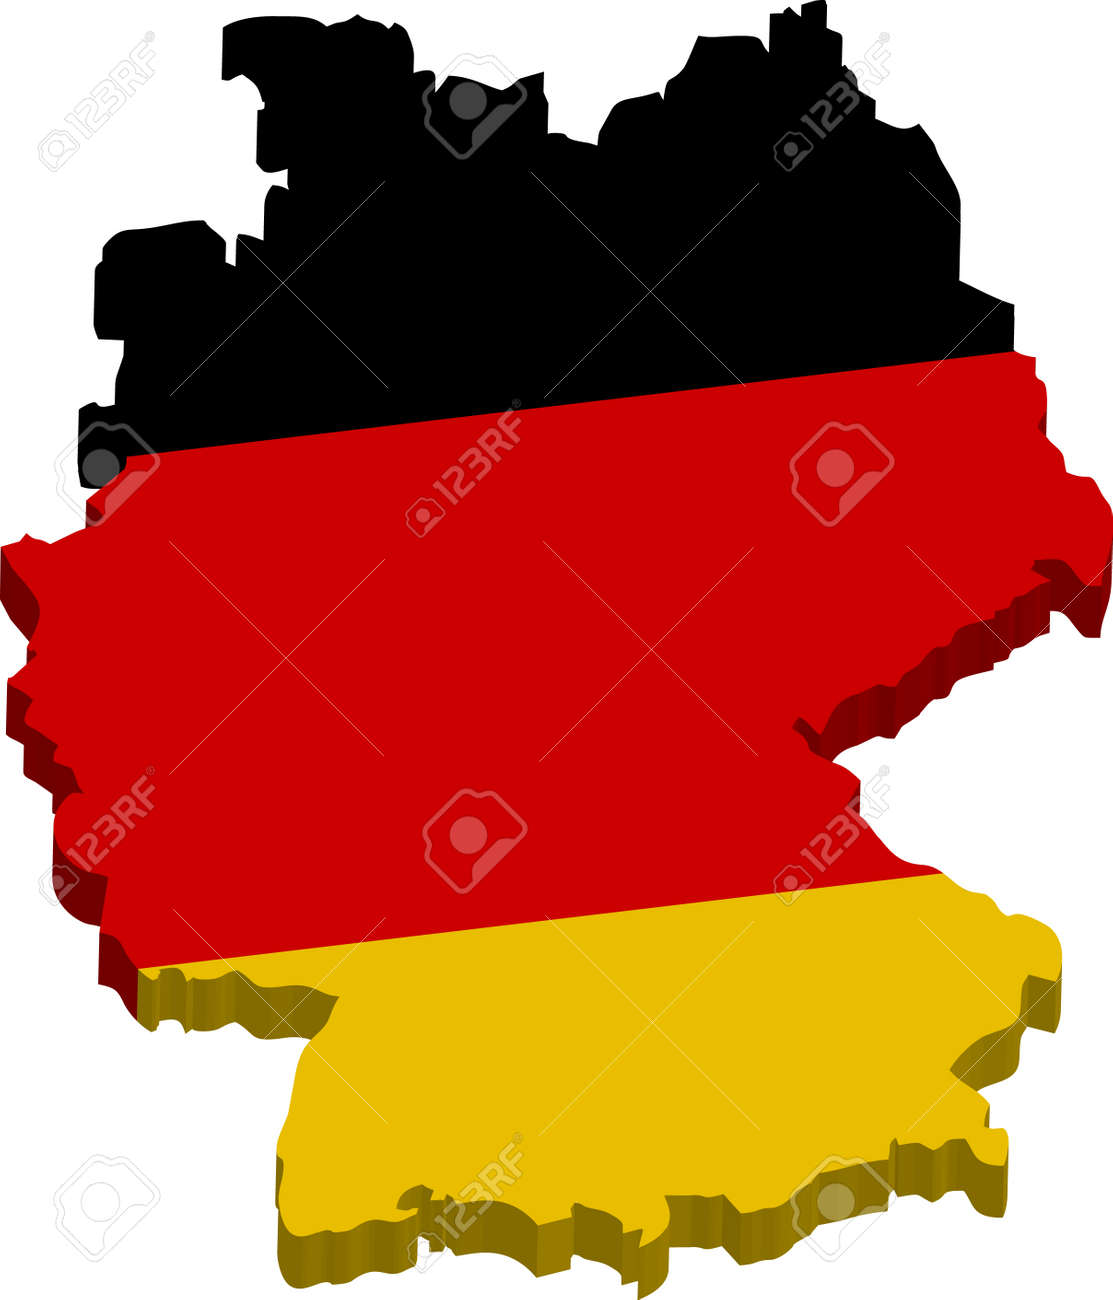 Map Of Germany 3d.A Map Of Germany 3d With Flag On White Baclground Royalty Free